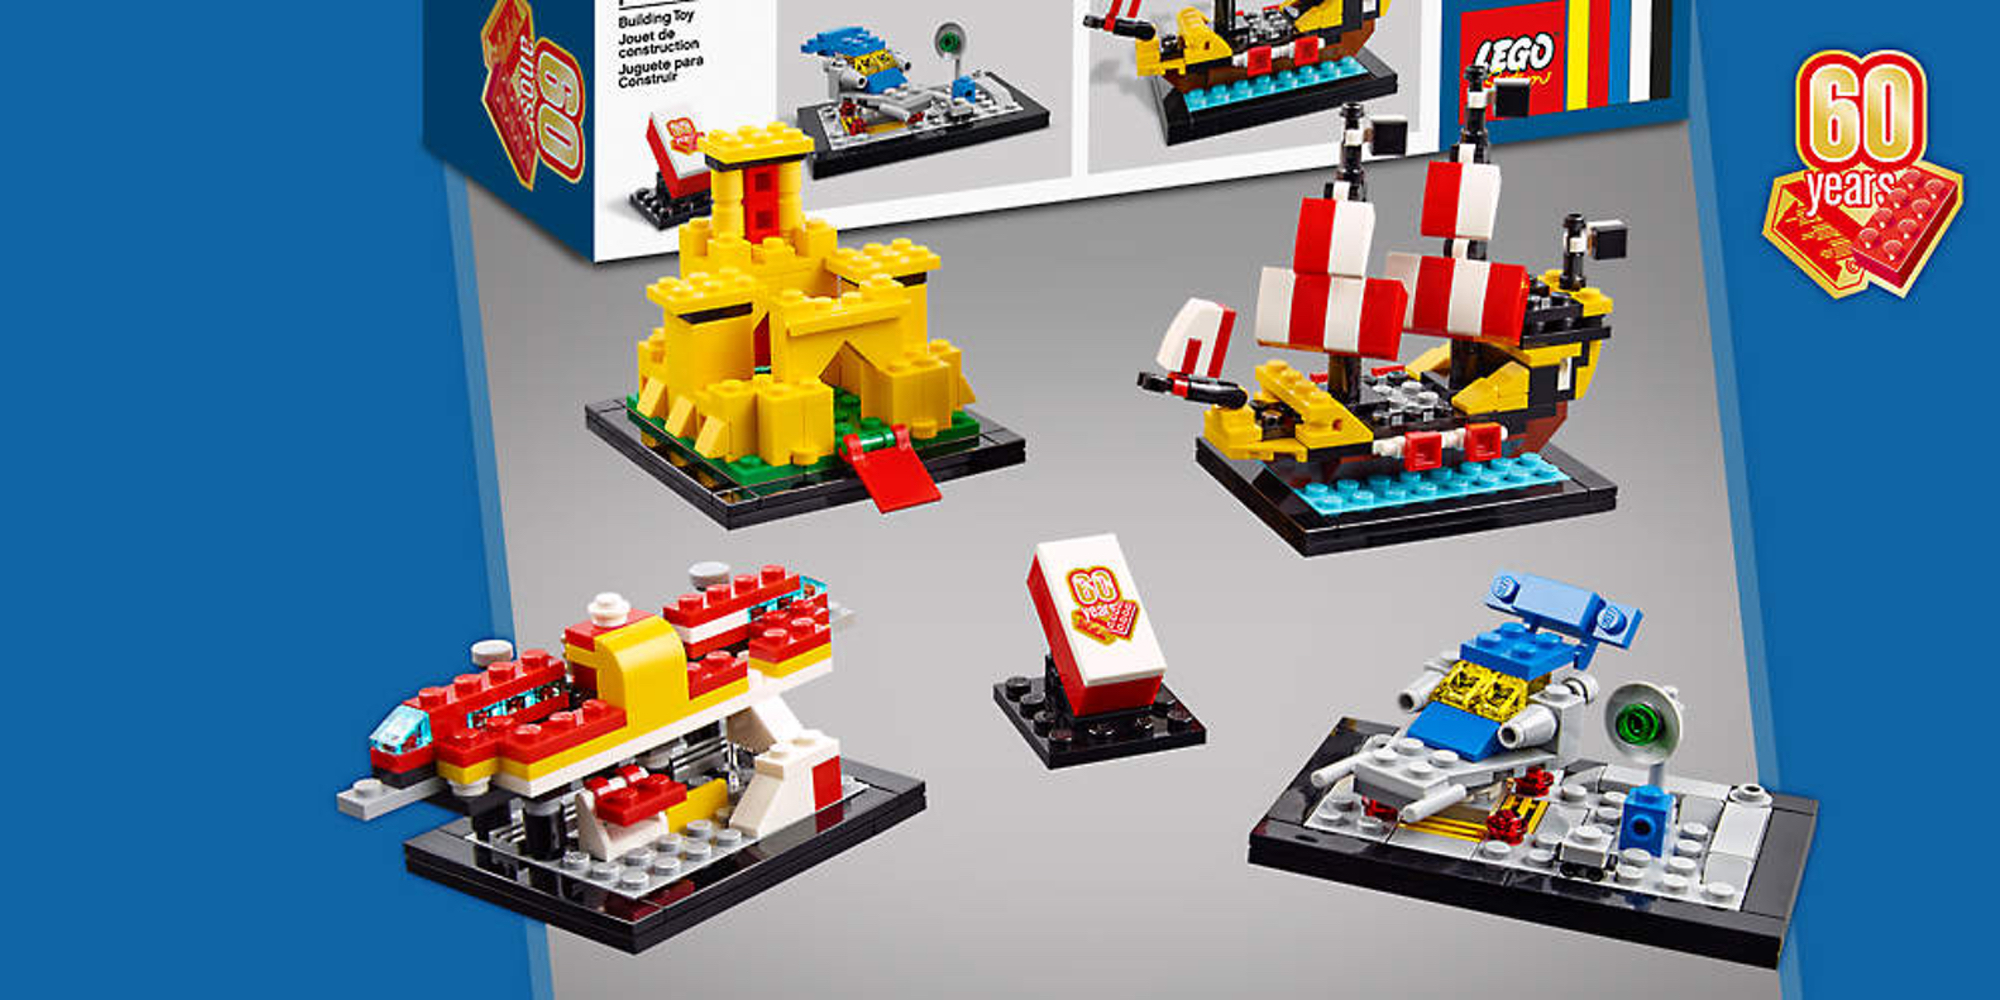 LEGO shows off exclusive new 60 Years of the Brick kit  here s how     LEGO shows off exclusive new 60 Years of the Brick kit  here s how you can  get it for free